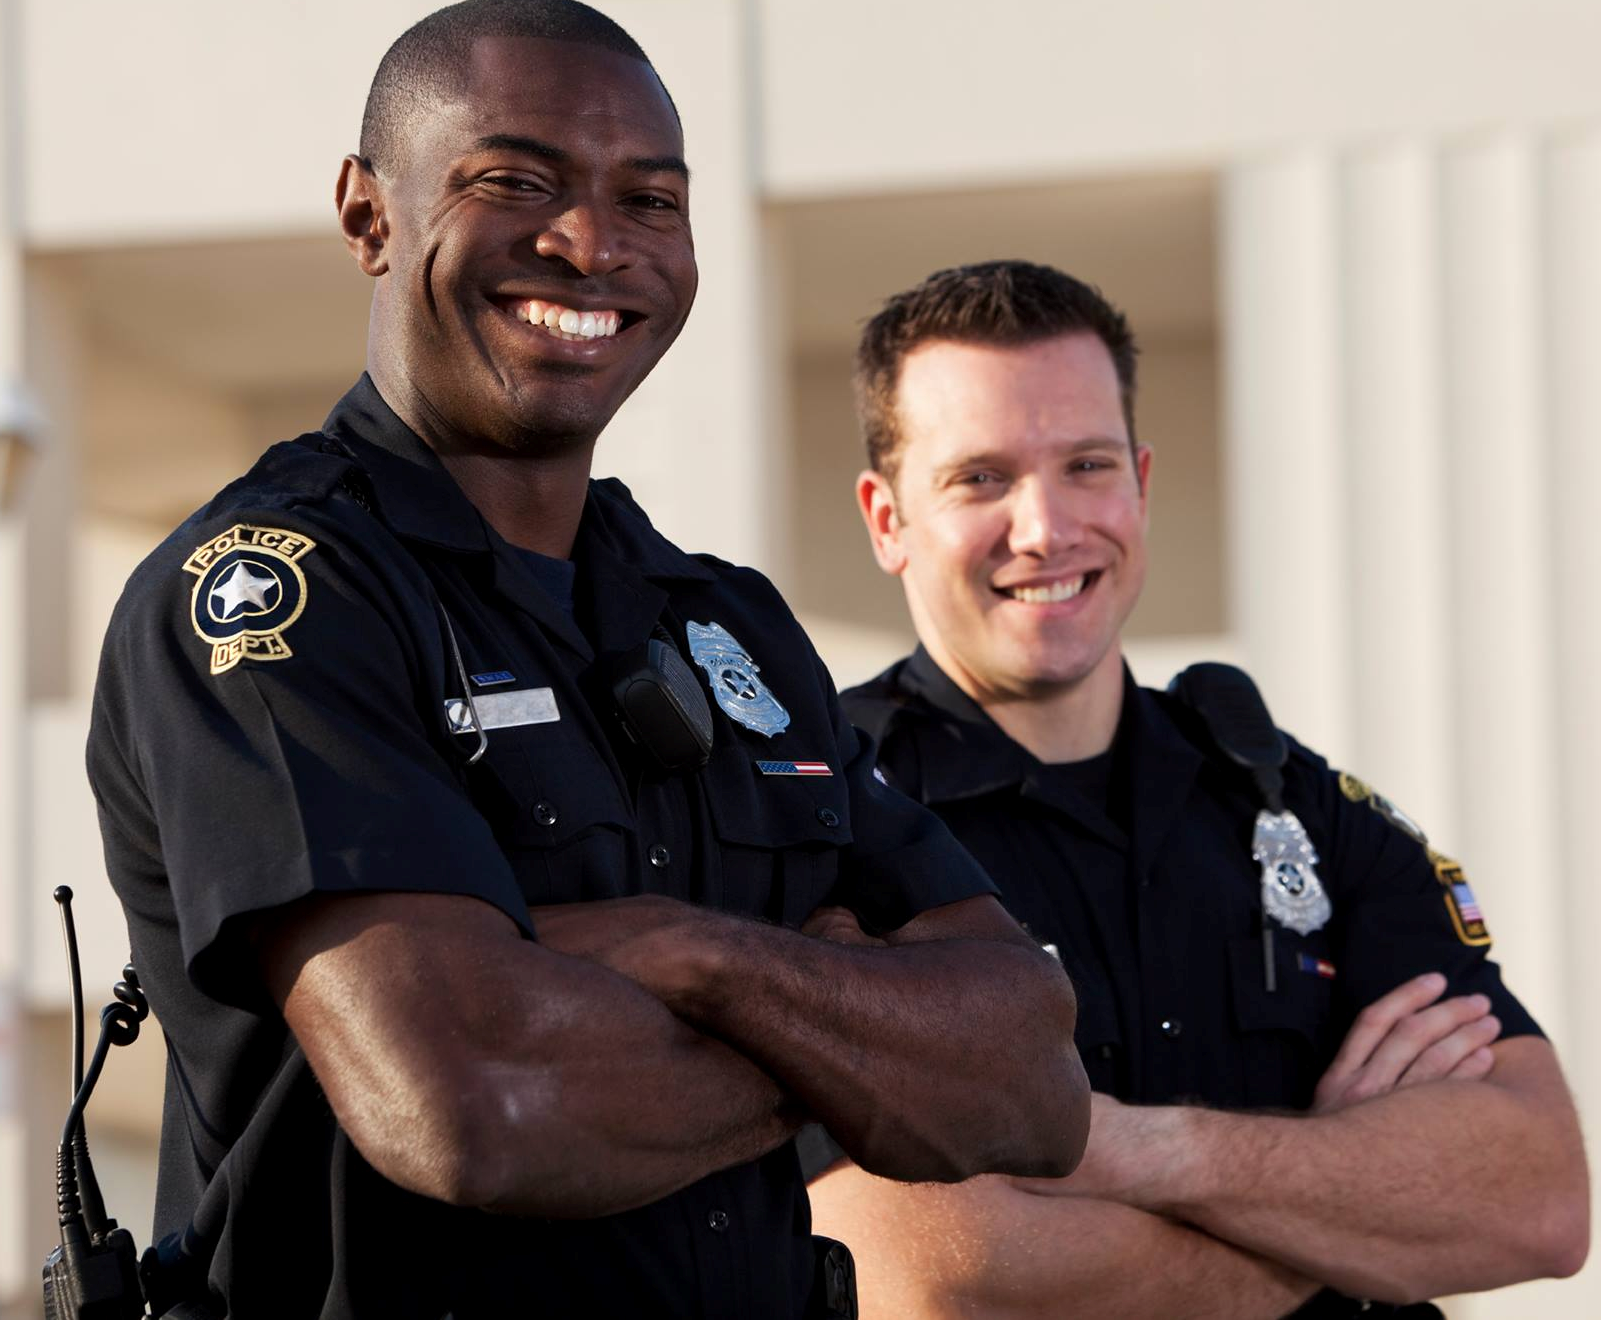 PoliceExam911 is the best prep course on the market for the police written exams